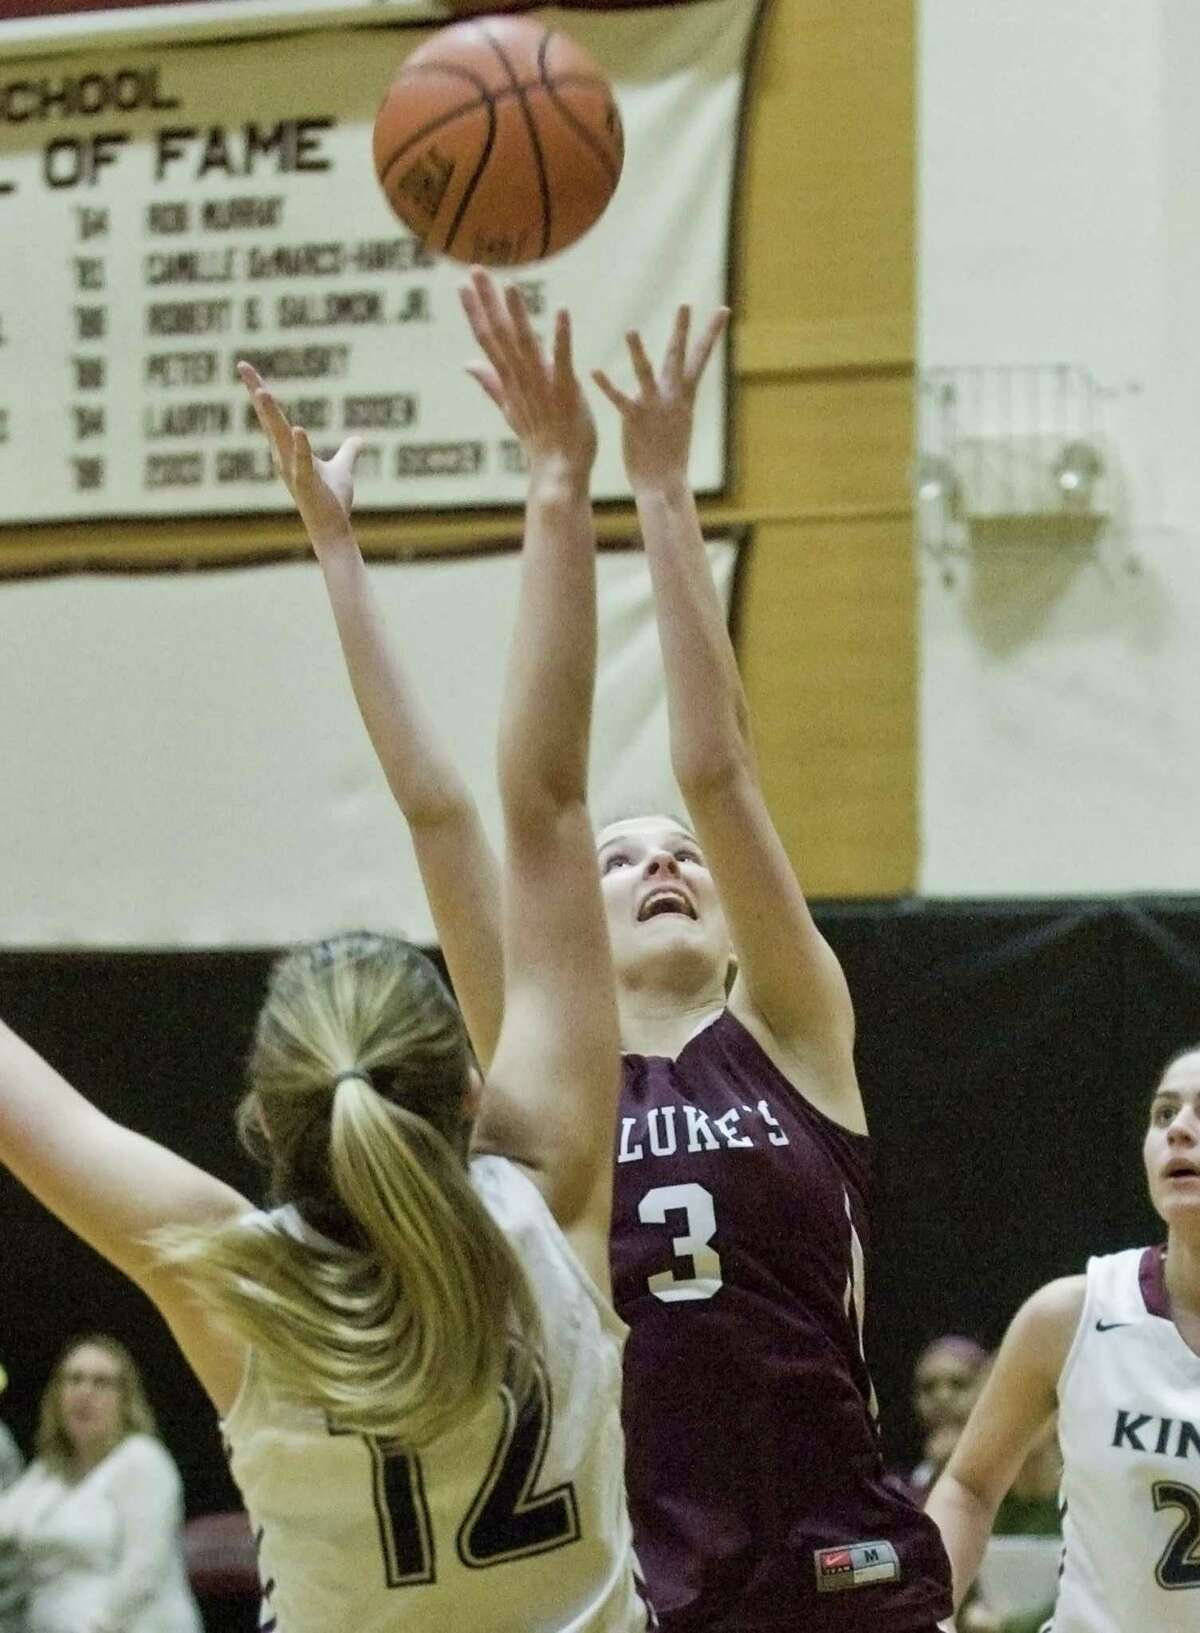 St. Luke's School's Bridget Dalton tries for the rebound in a game against King School, played at St. Luke's. Tuesday, Feb. 21, 2017